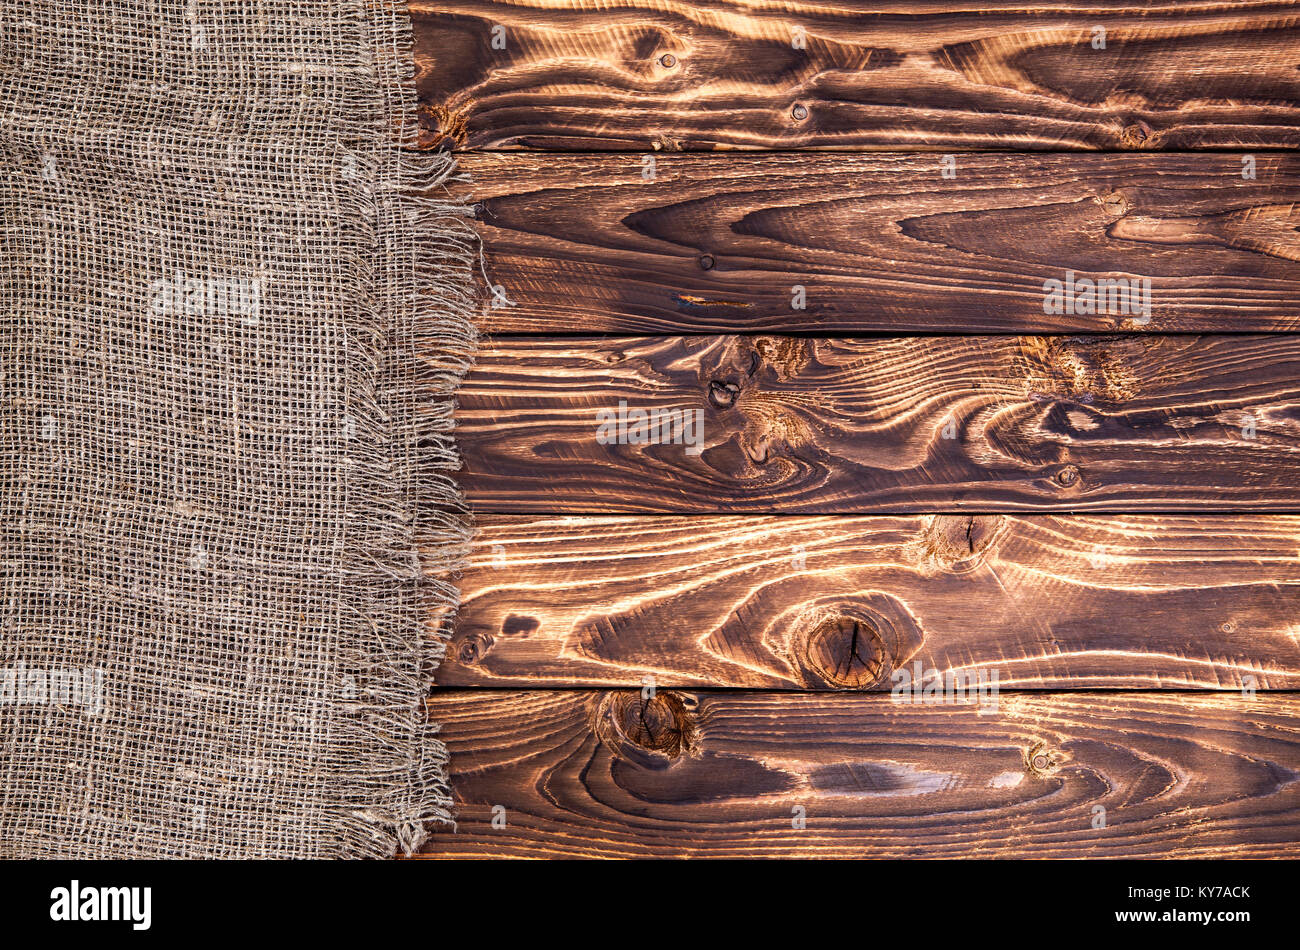 Dark Wooden Background With Burlap Rustic Wood And Sack Stock Photo